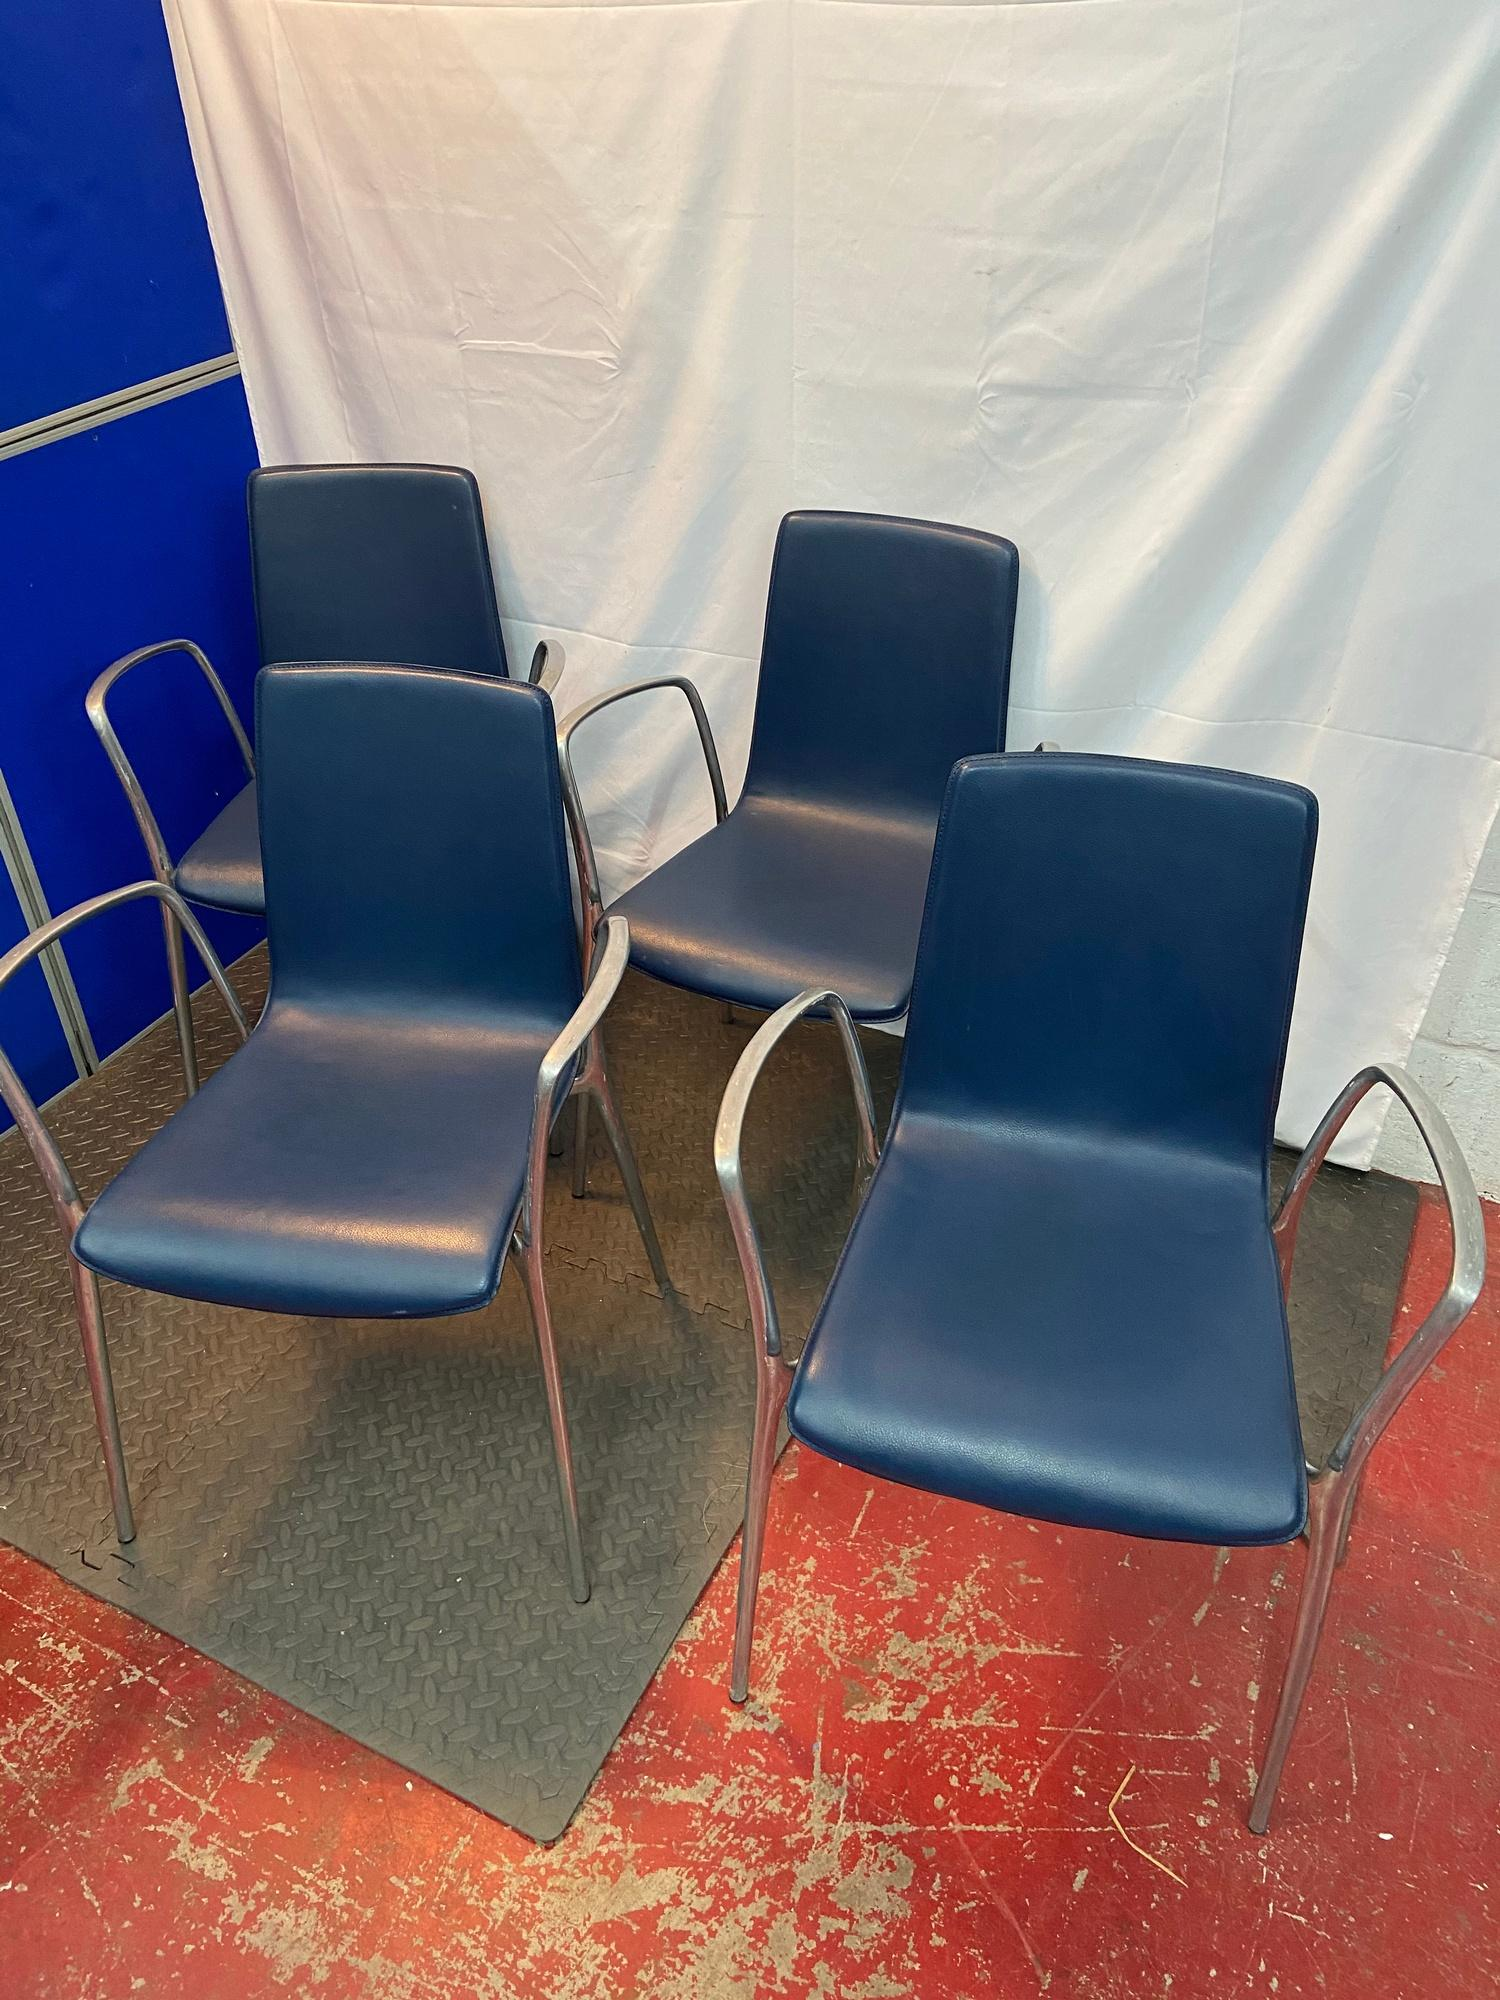 Lot 235 - A Set of four Spanish designer Akaba dining chairs designed by Jorge Pensi. Blue leather material